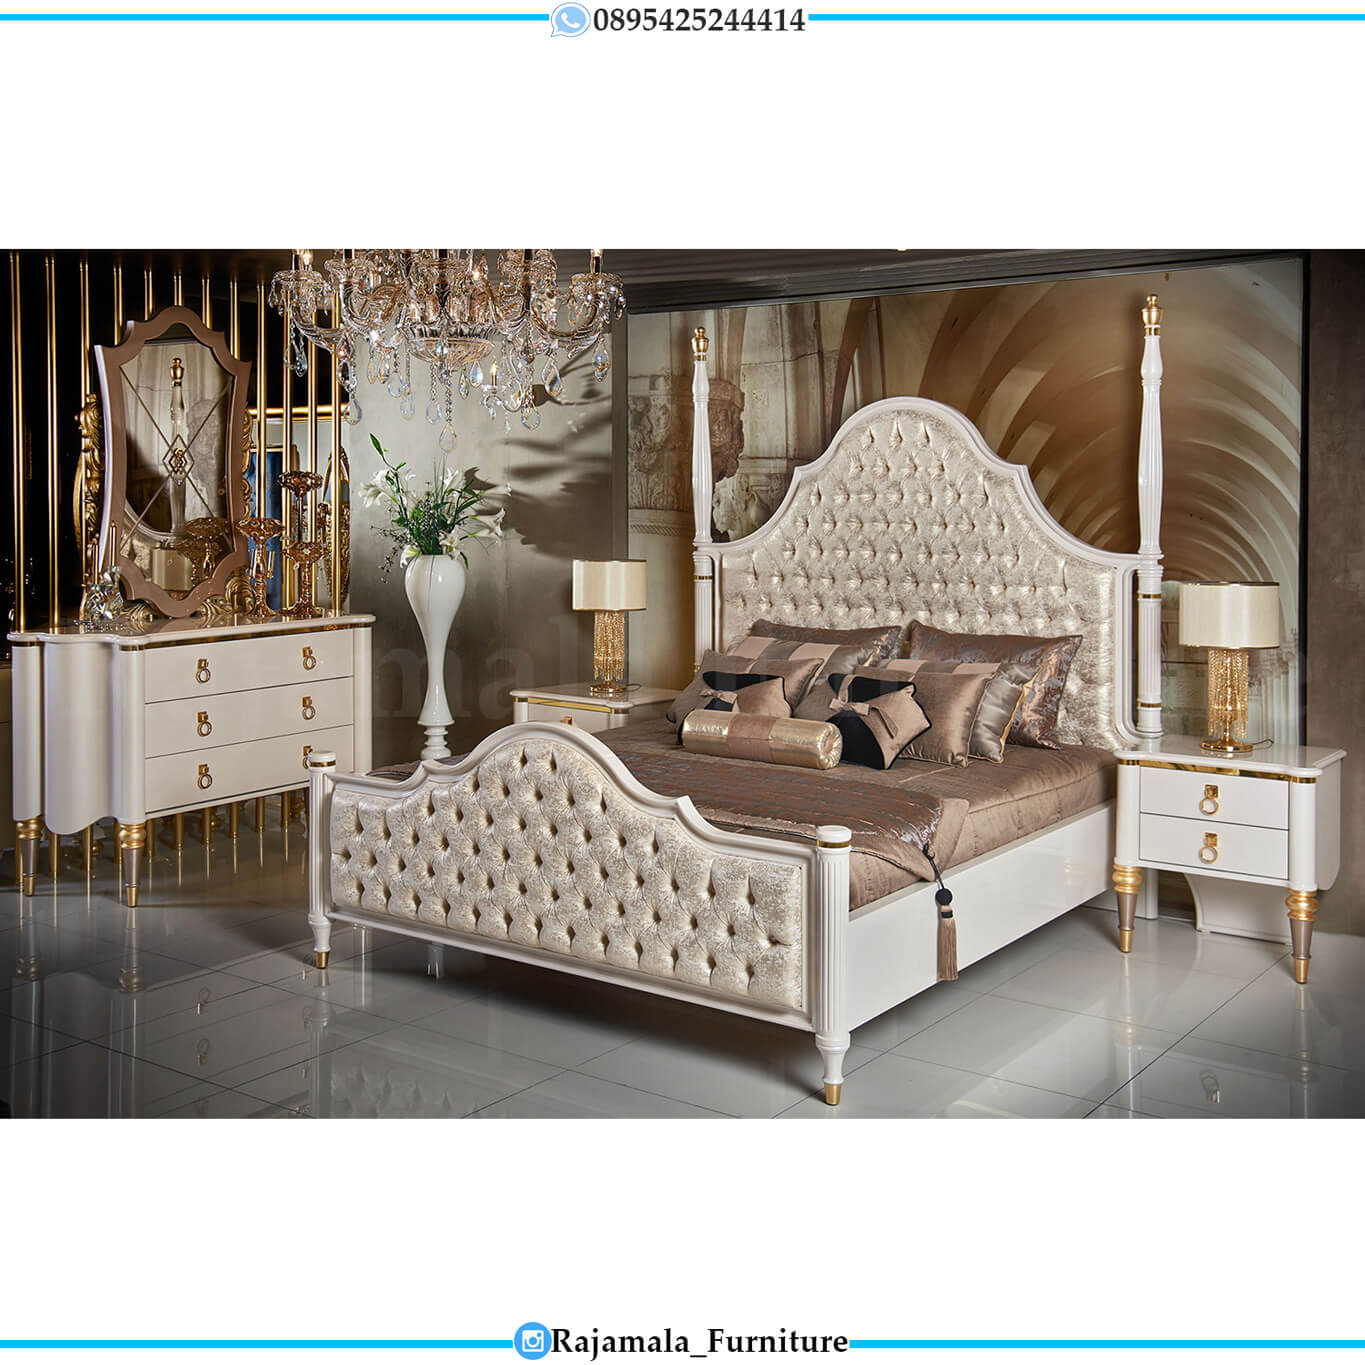 Jual Kamar Set Mewah Putih Duco Glossy Luxury Bedroom Set Design RM-0454